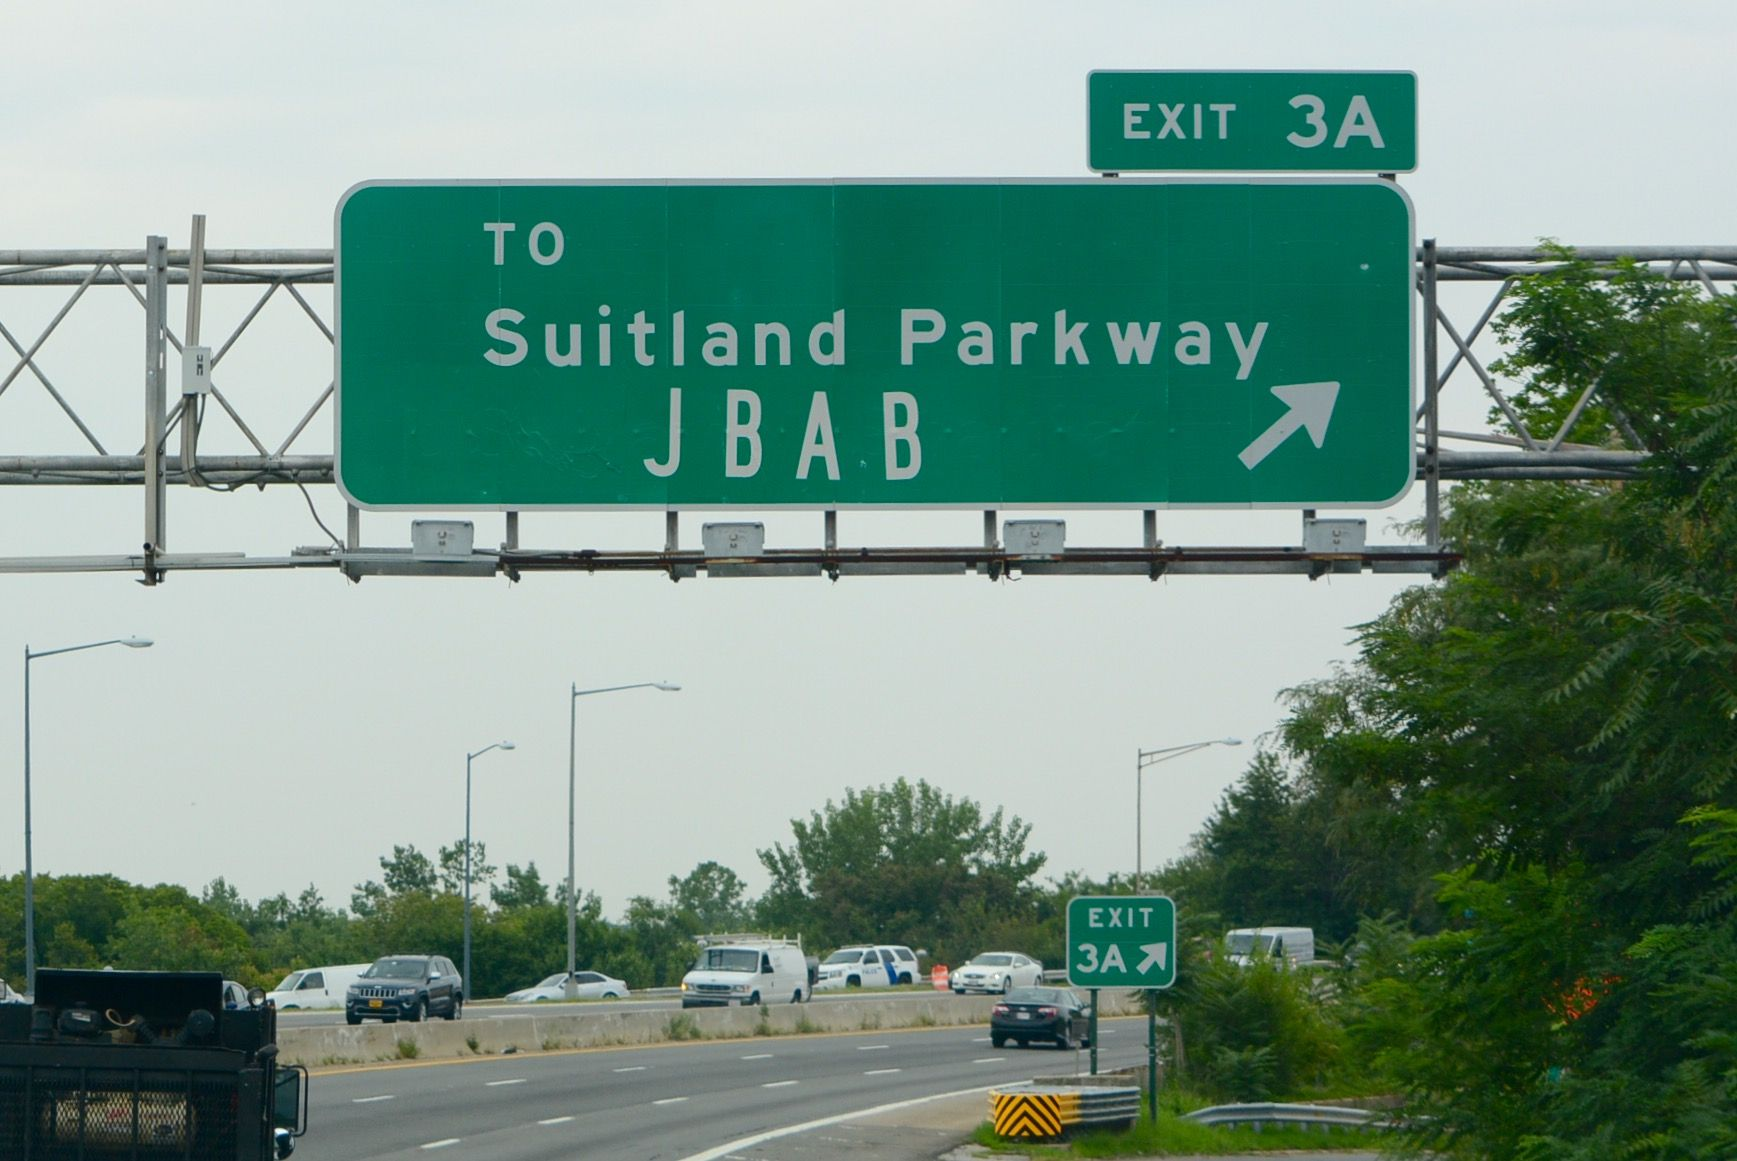 The Interstate 295 and Suitland Parkway junction is a partial cloverleaf interchange, consisting of three ramp loops in its four quadrants. The northbound exit to Suitland Parkway is numbered Exit 3. Okay, so the font used in the sign isn't up to the the Manual on Uniform Traffic Control Device's standards – we'll let that slide. Otherwise the sign seems pretty straightforward, except... (WTOP/Dave Dildine)